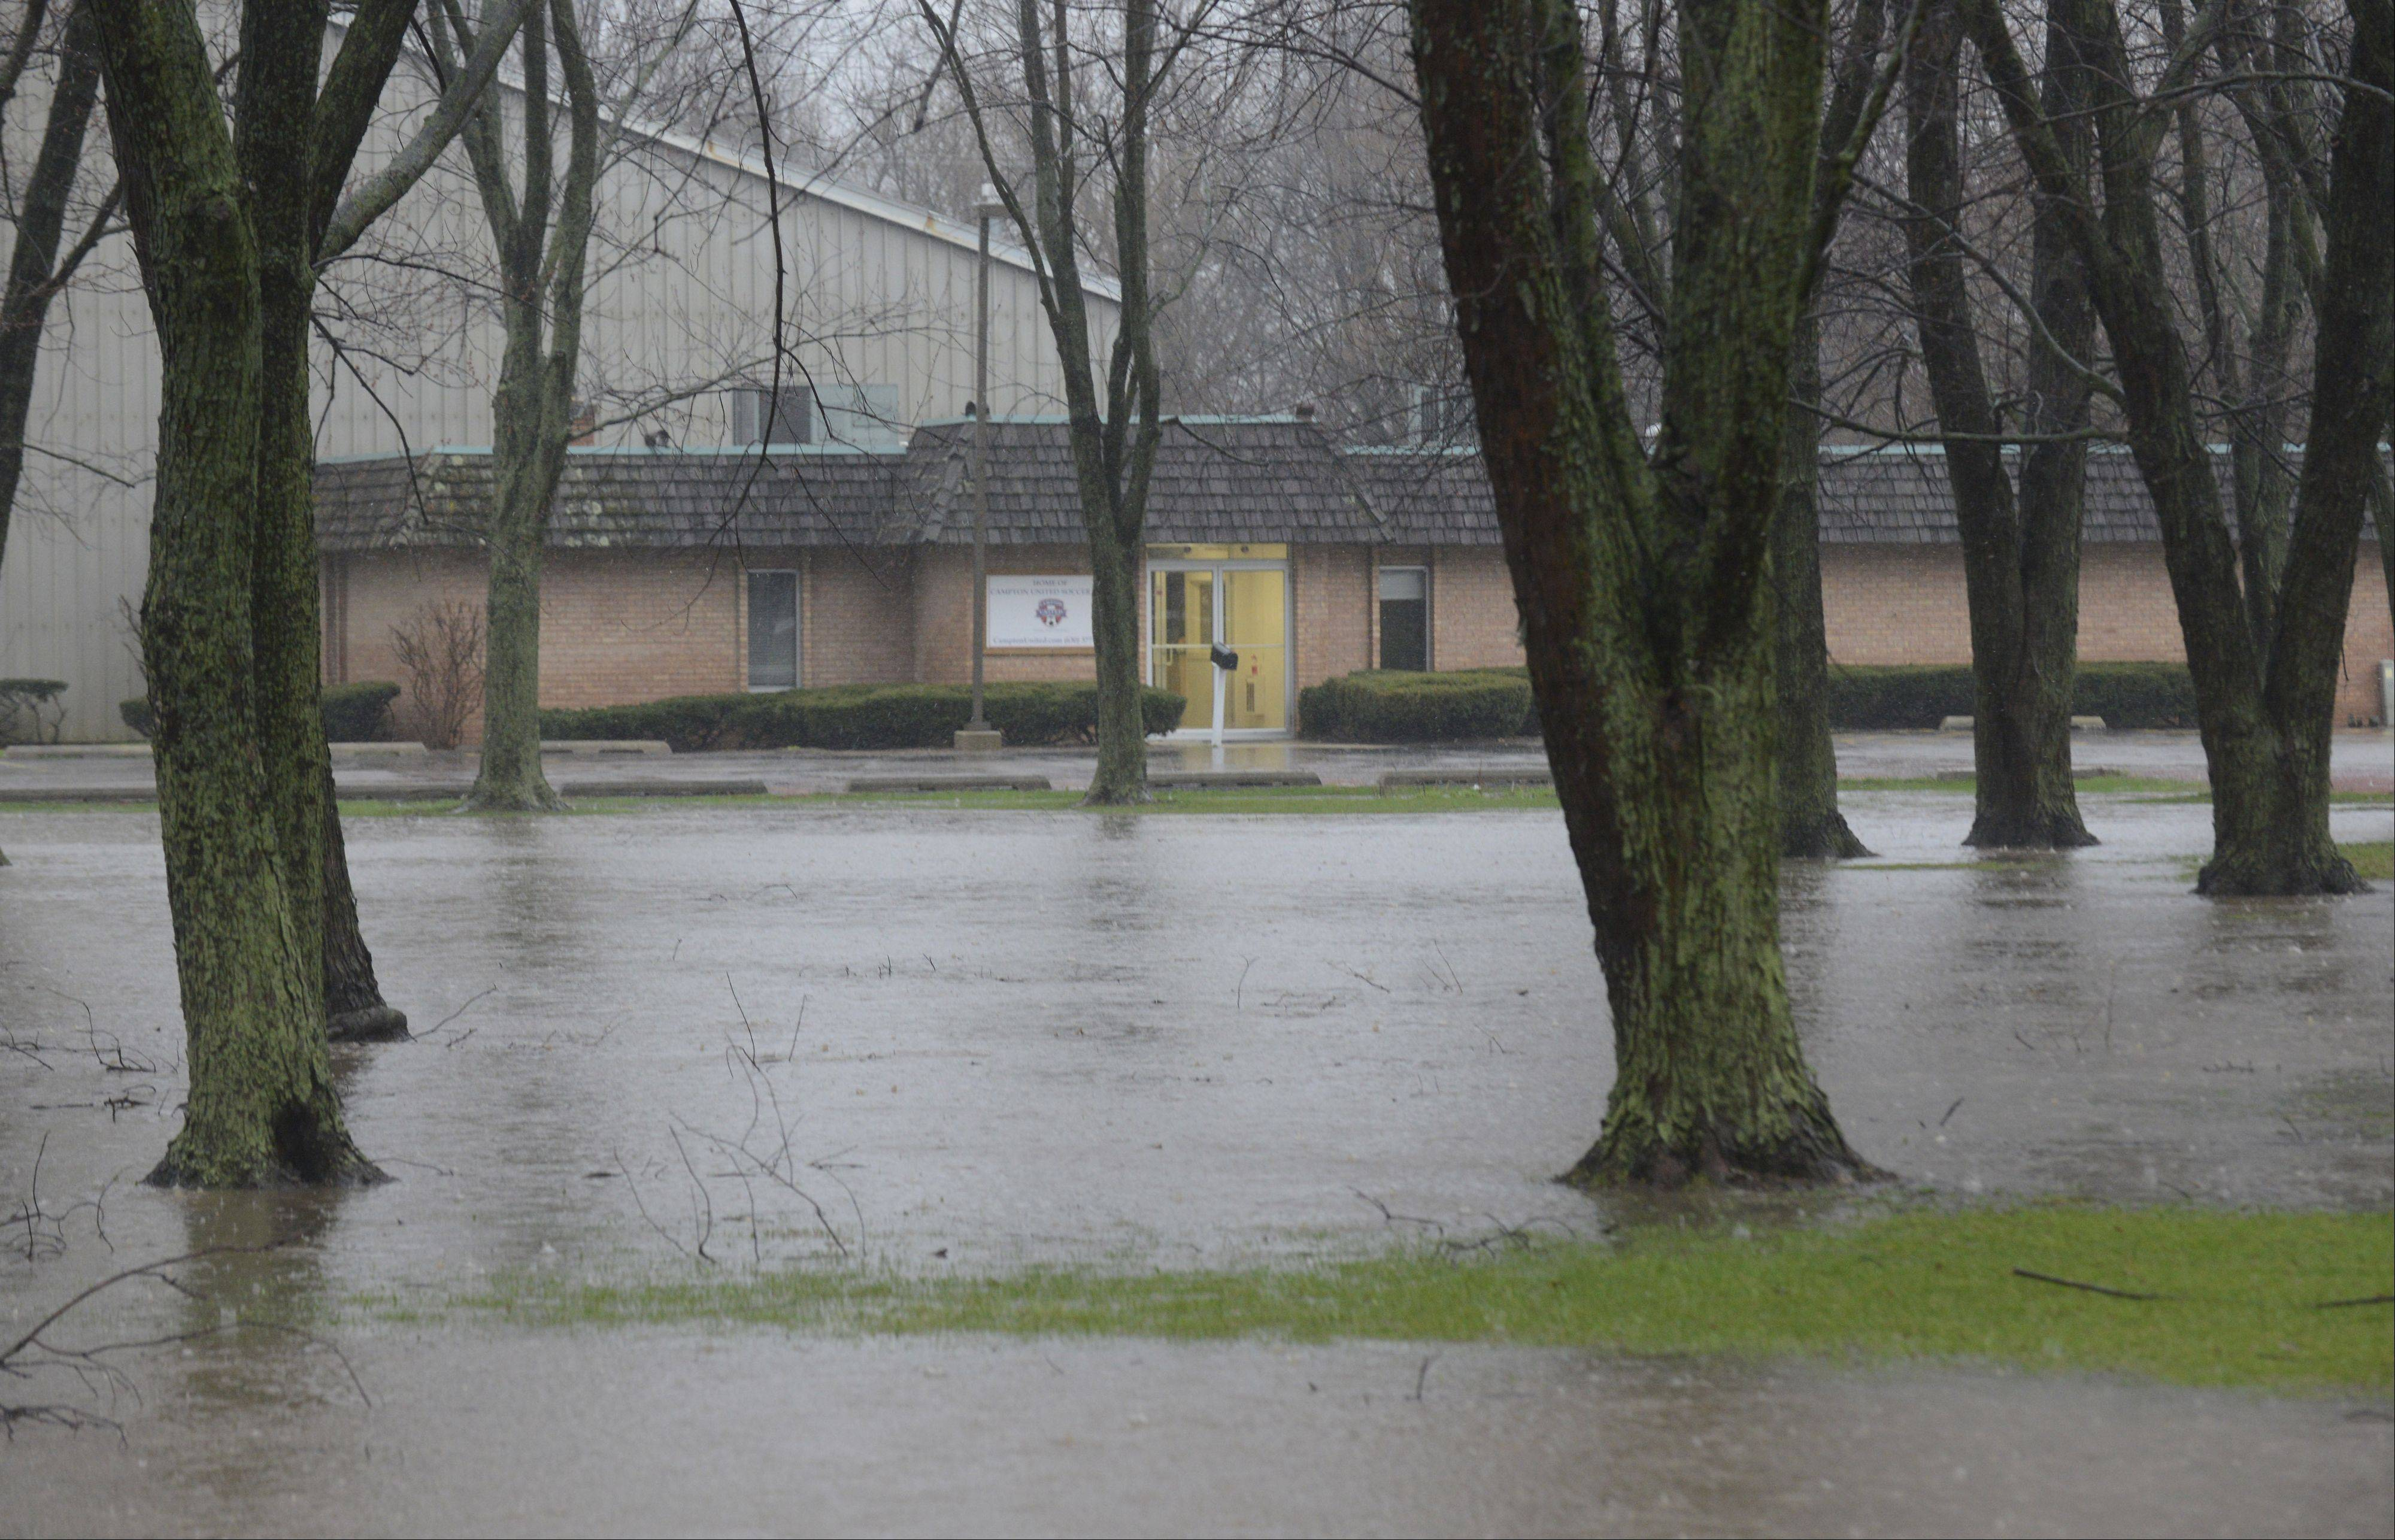 The front yard of the Campton United Soccer Club headquarters is flooded at Peck Road and Dean Street in St. Charles on Thursday, April 18.